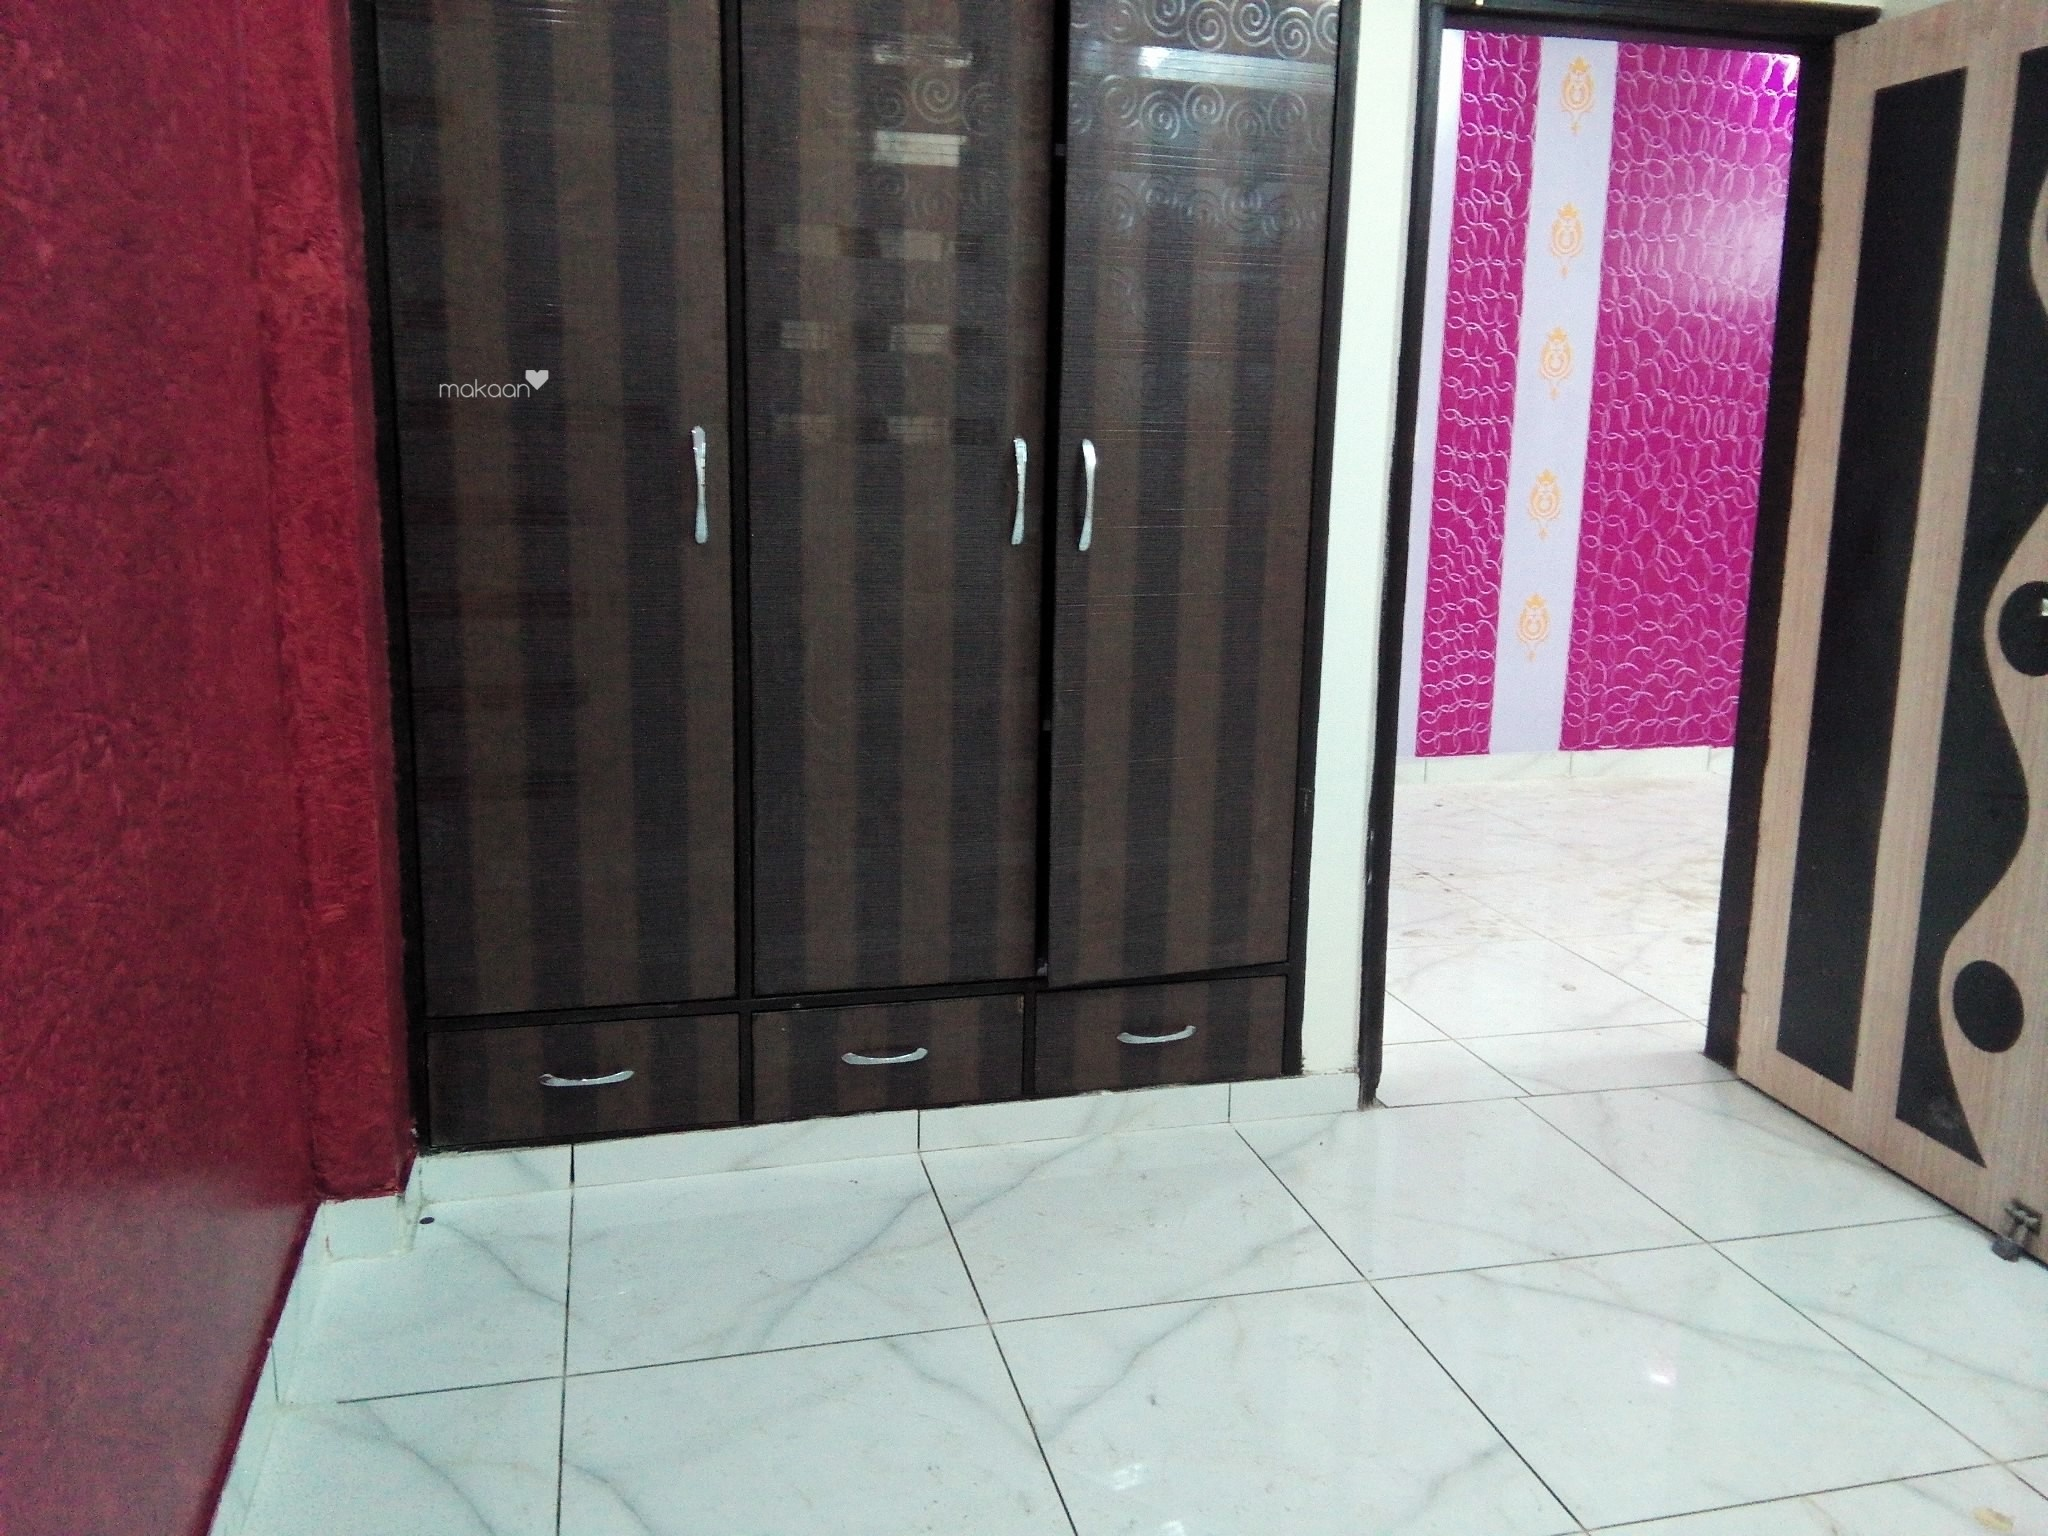 880 sq ft 2BHK 2BHK+2T (880 sq ft) Property By Demera Homz In Project, Sector 10 Vasundhara